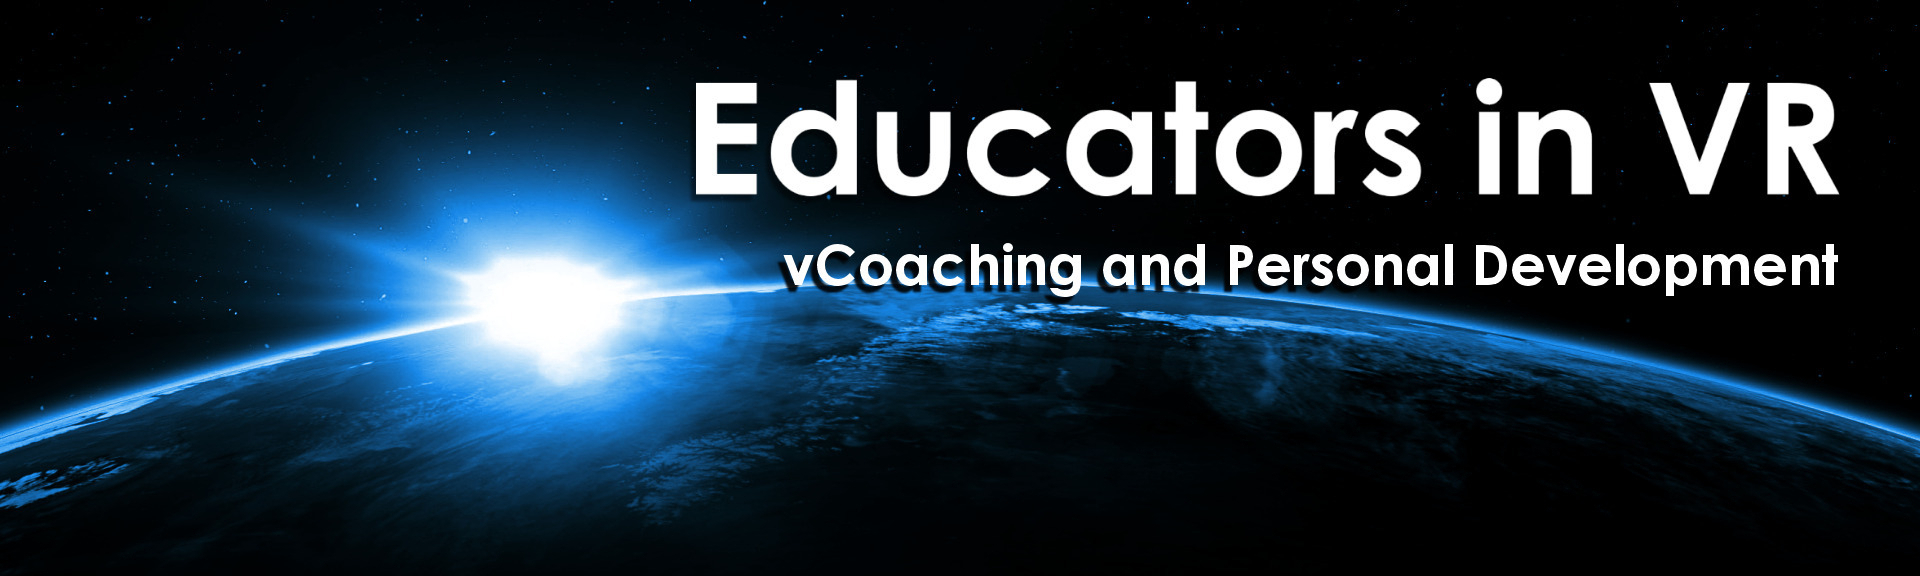 Educators in vr   vcoaching and personal development altspacevr banner 2021